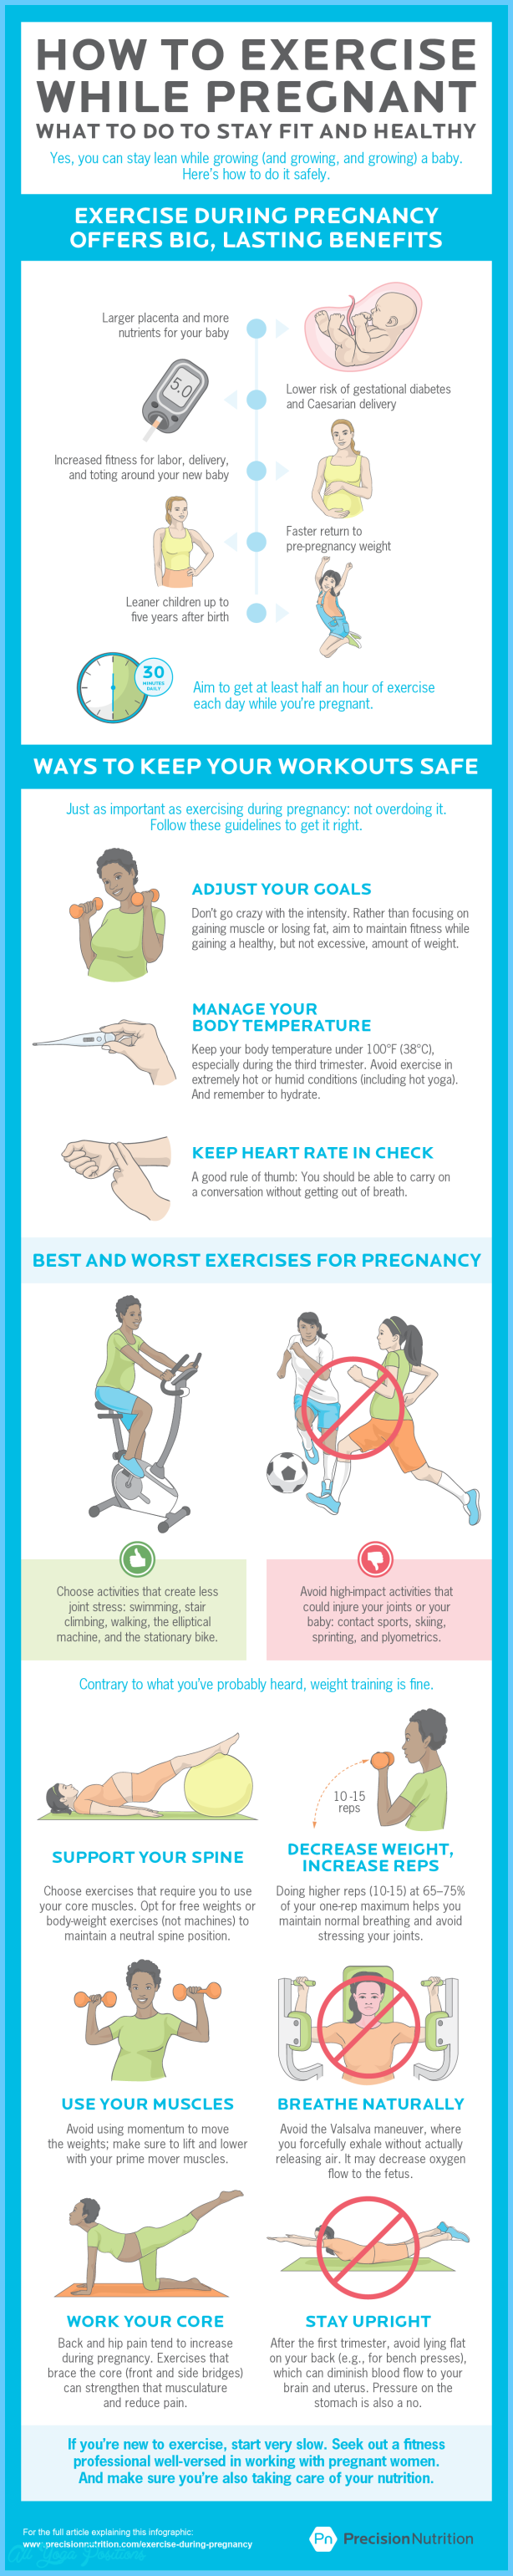 Good Exercise During Pregnancy_25.jpg